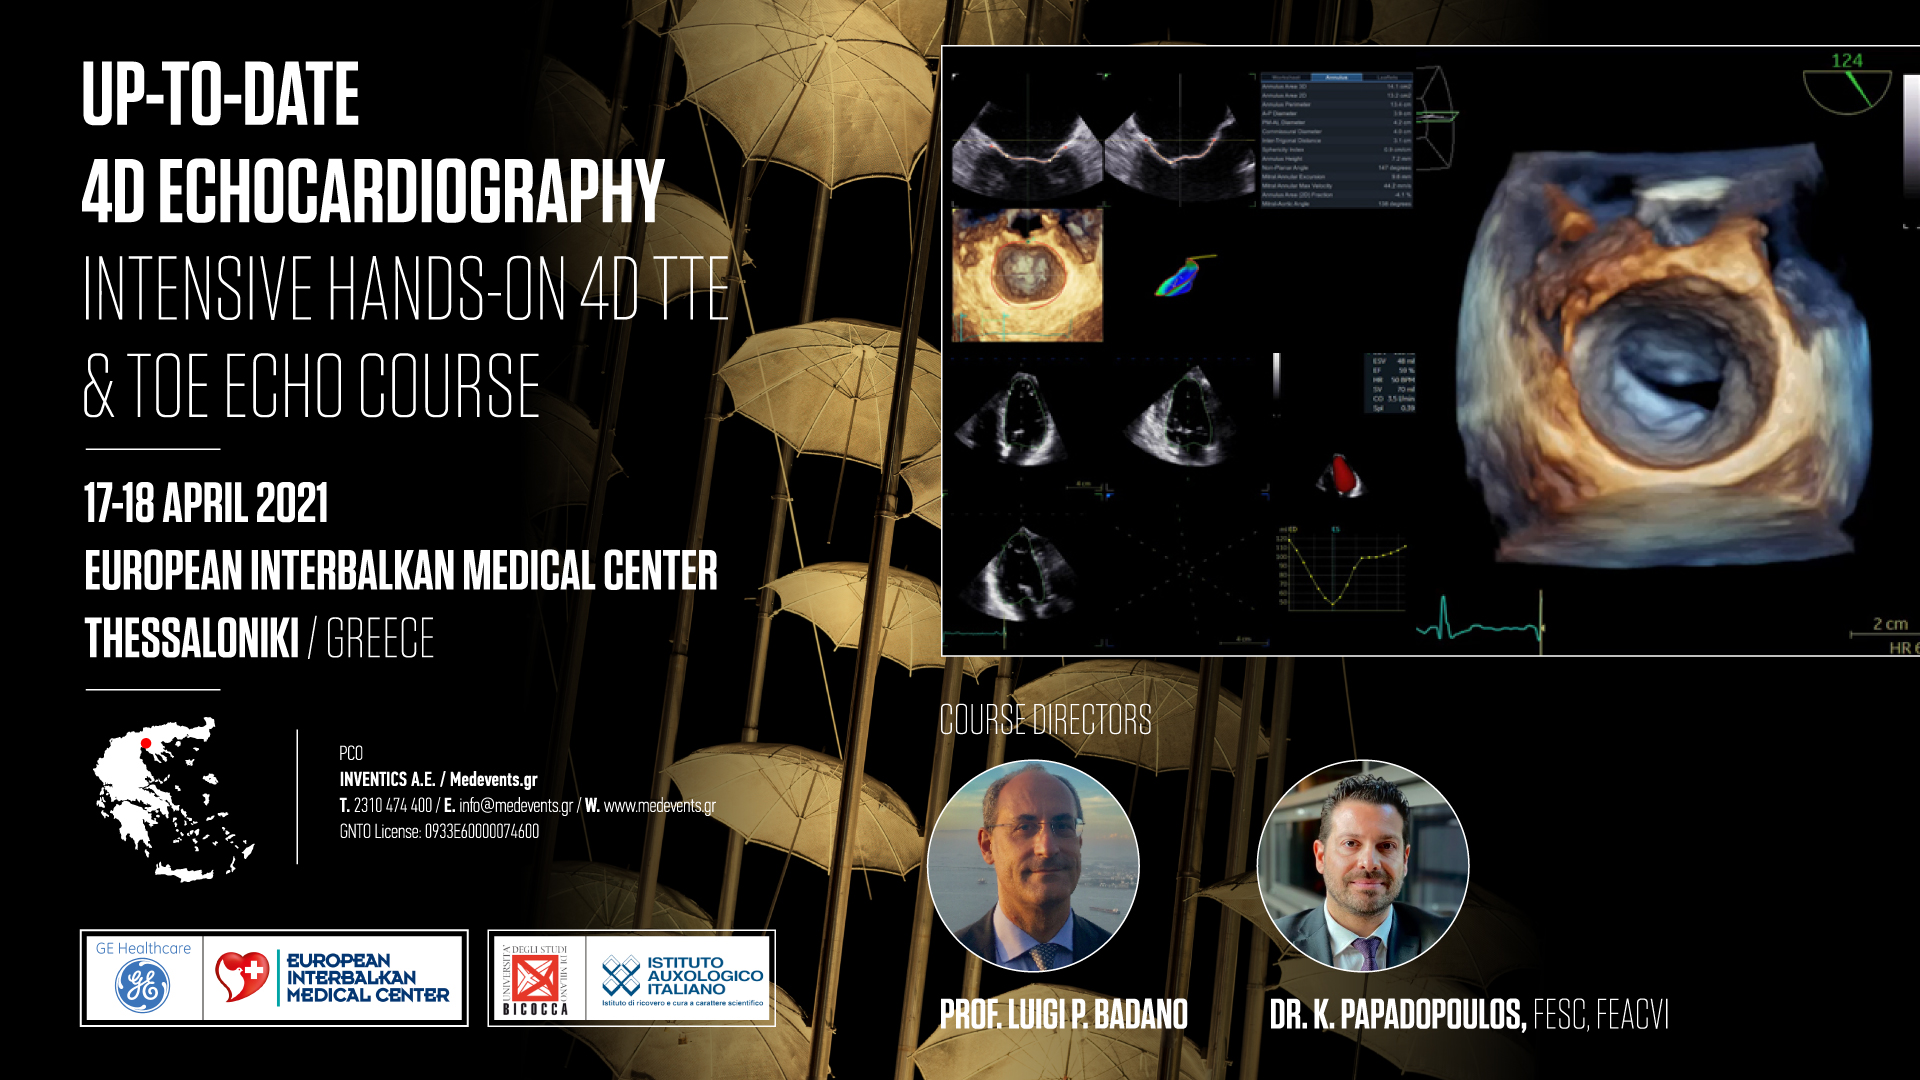 Up-To-Date 4D Echocardiography: Intensive hands-on 4D TTE and TOE Echo Course